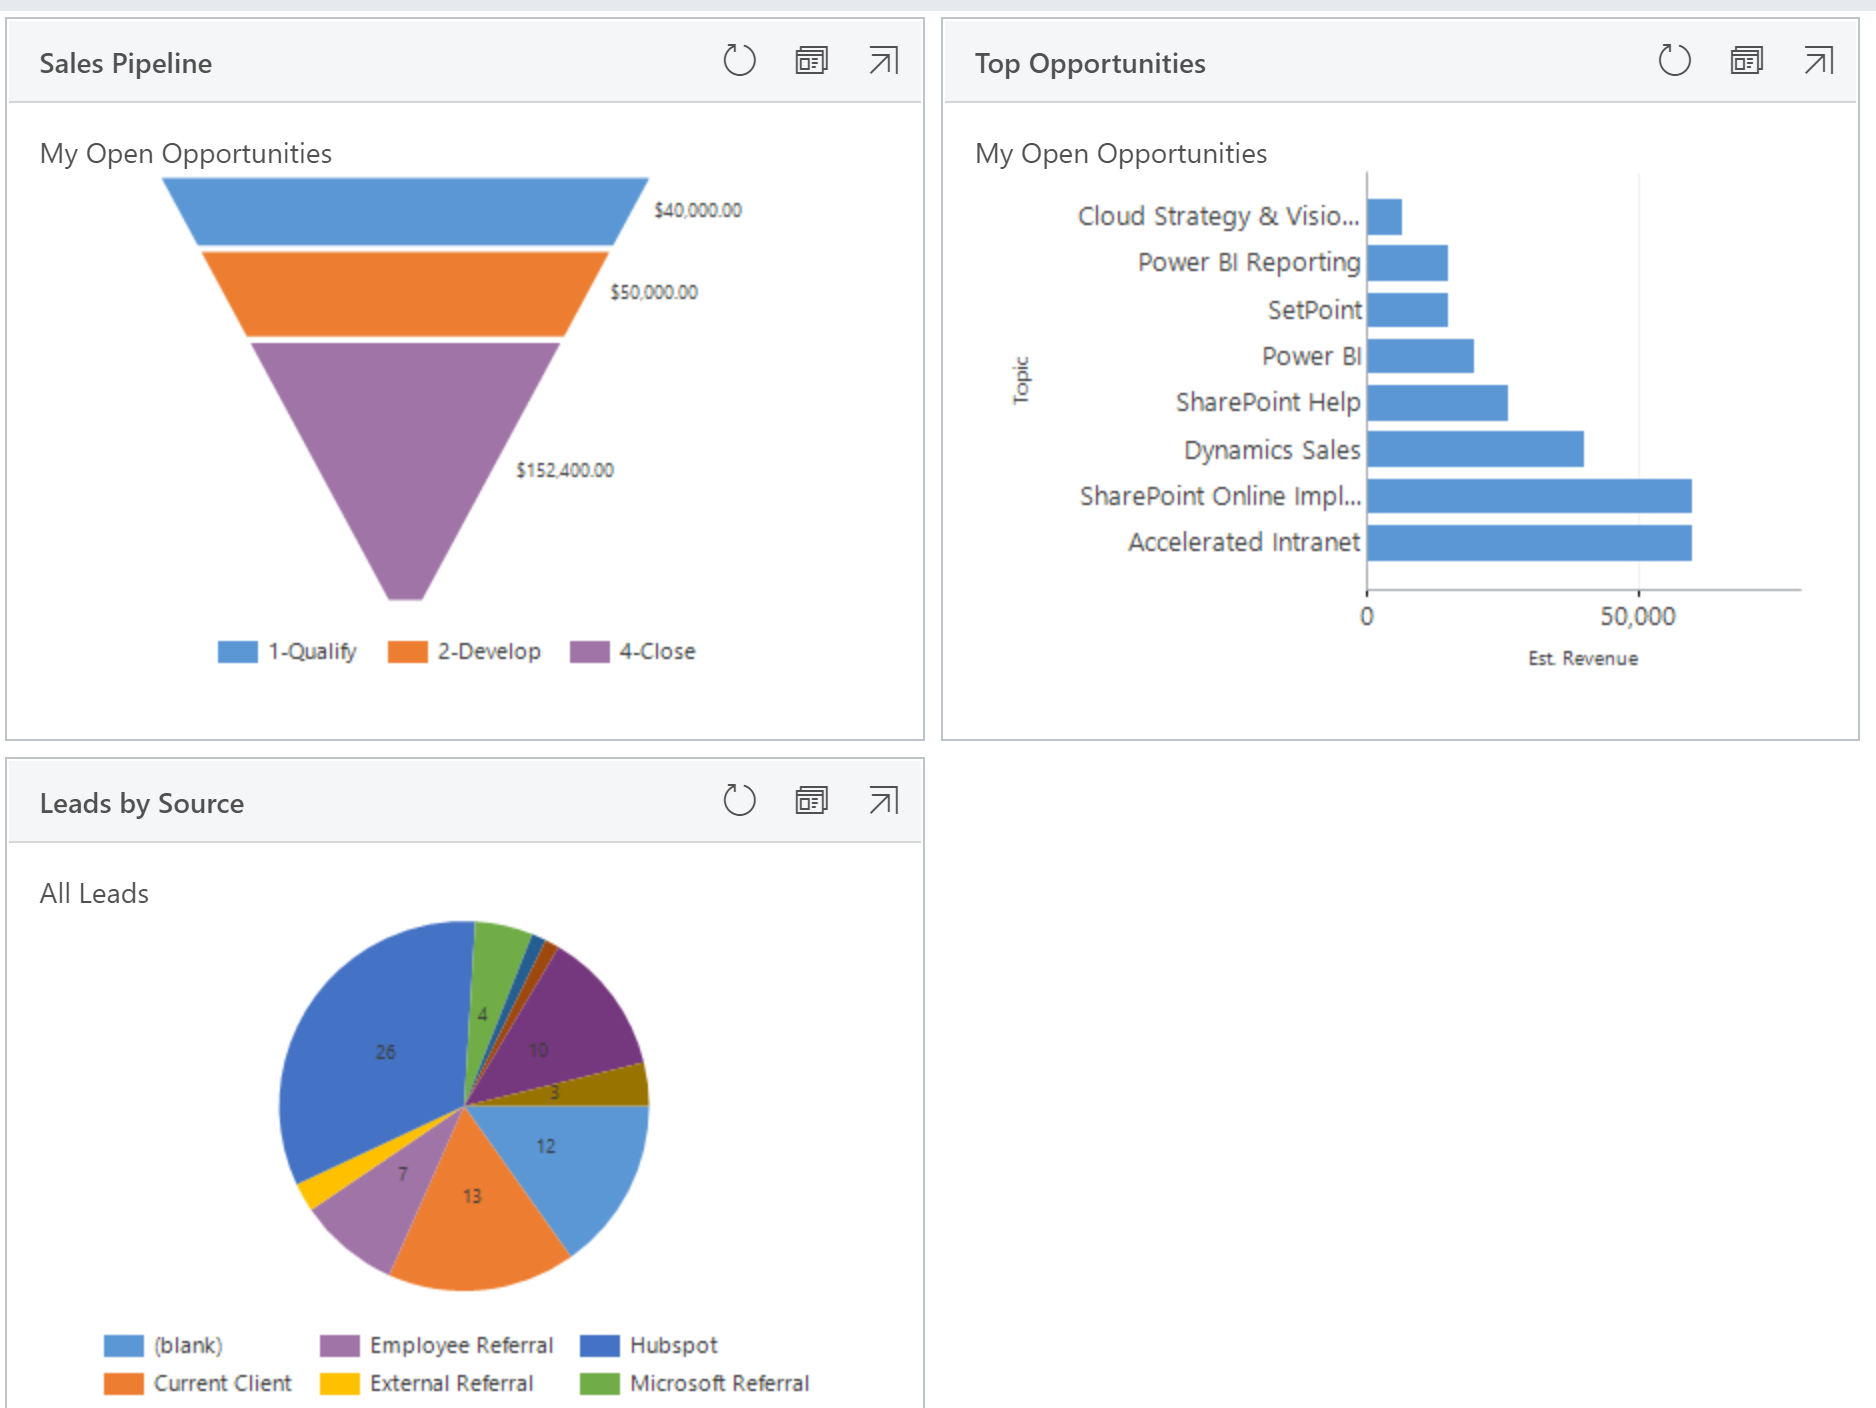 A Quick Guide to Dynamics & Power BI Dashboards